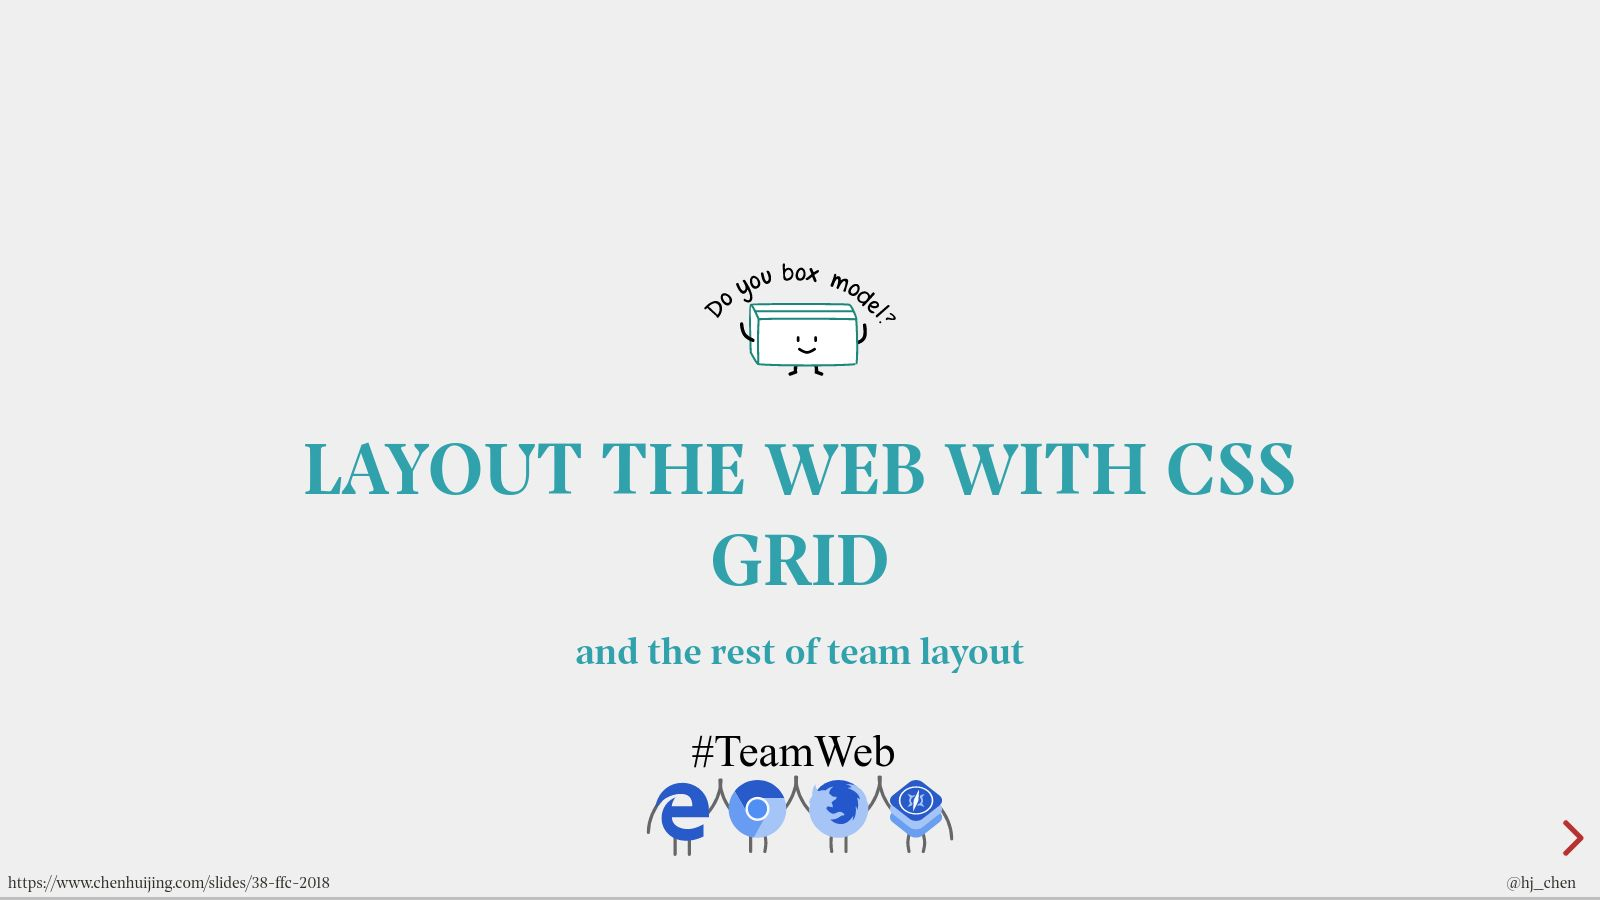 Layout the web with CSS Grid (and the rest of team layout)